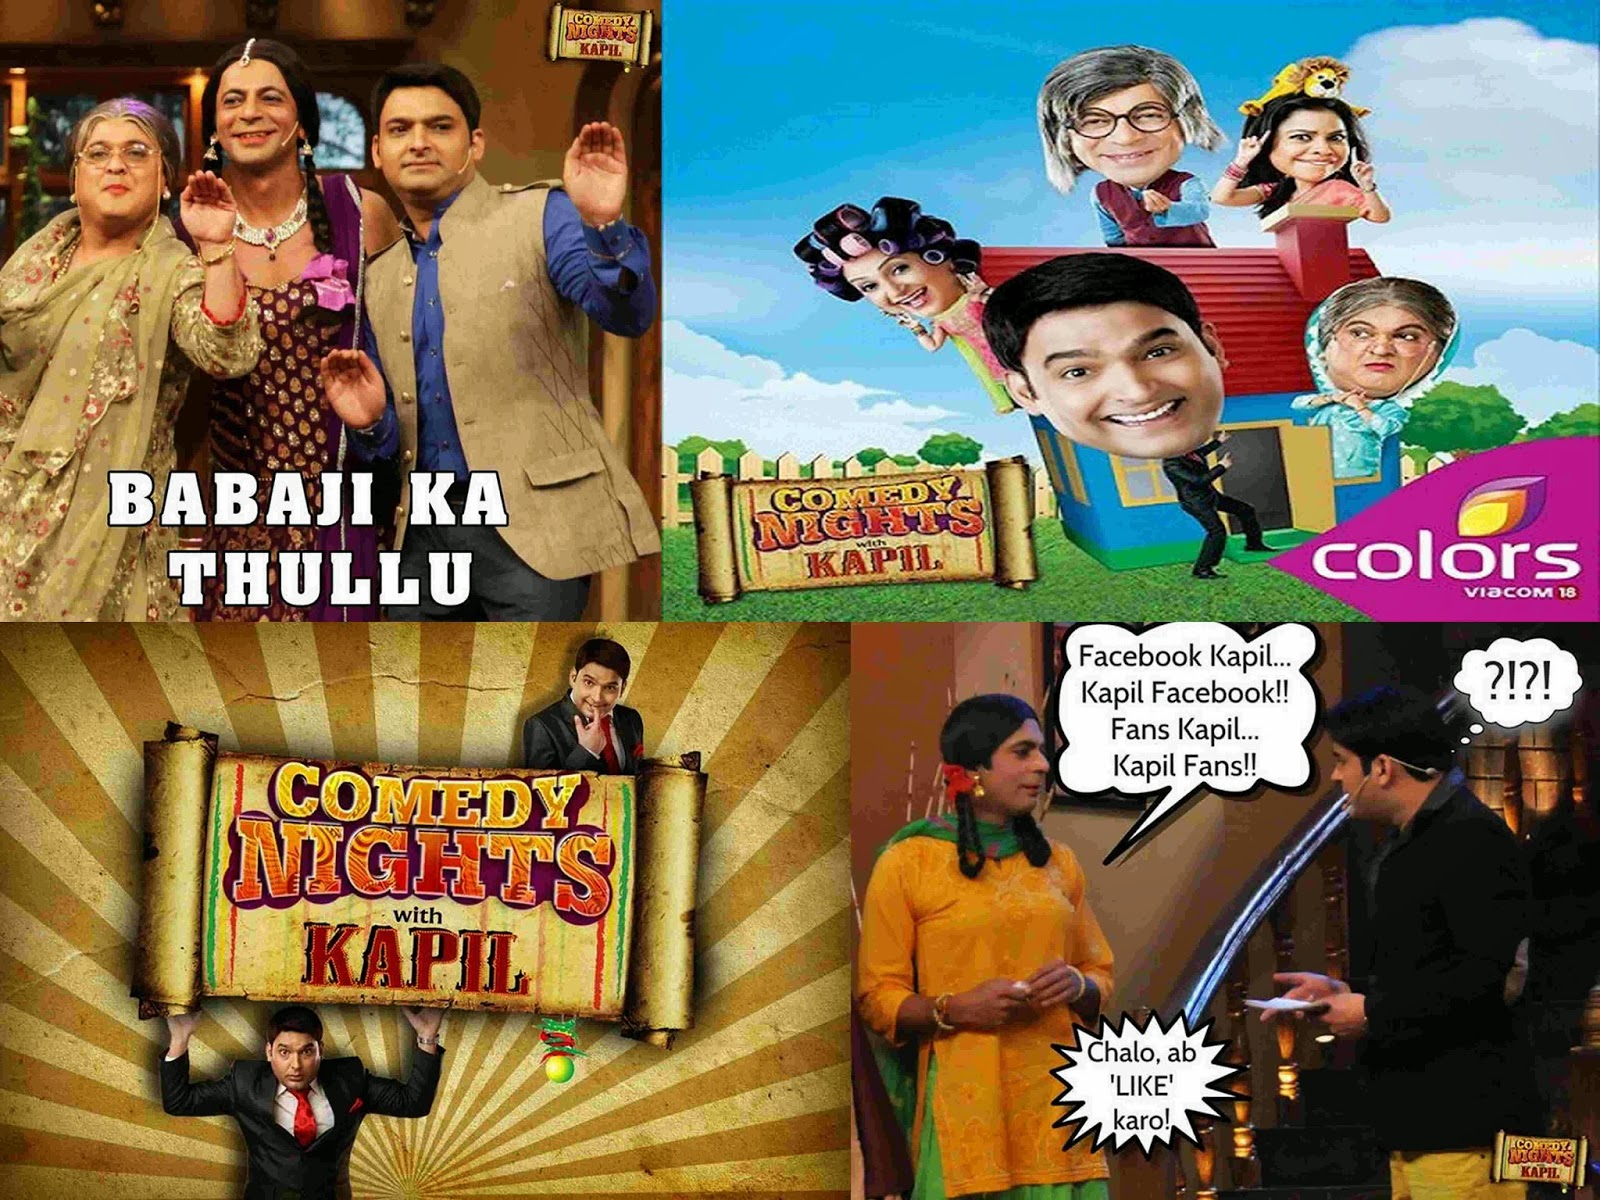 comedy nights with kapil - 18-01-2015 hd mp4 mobile movie | global